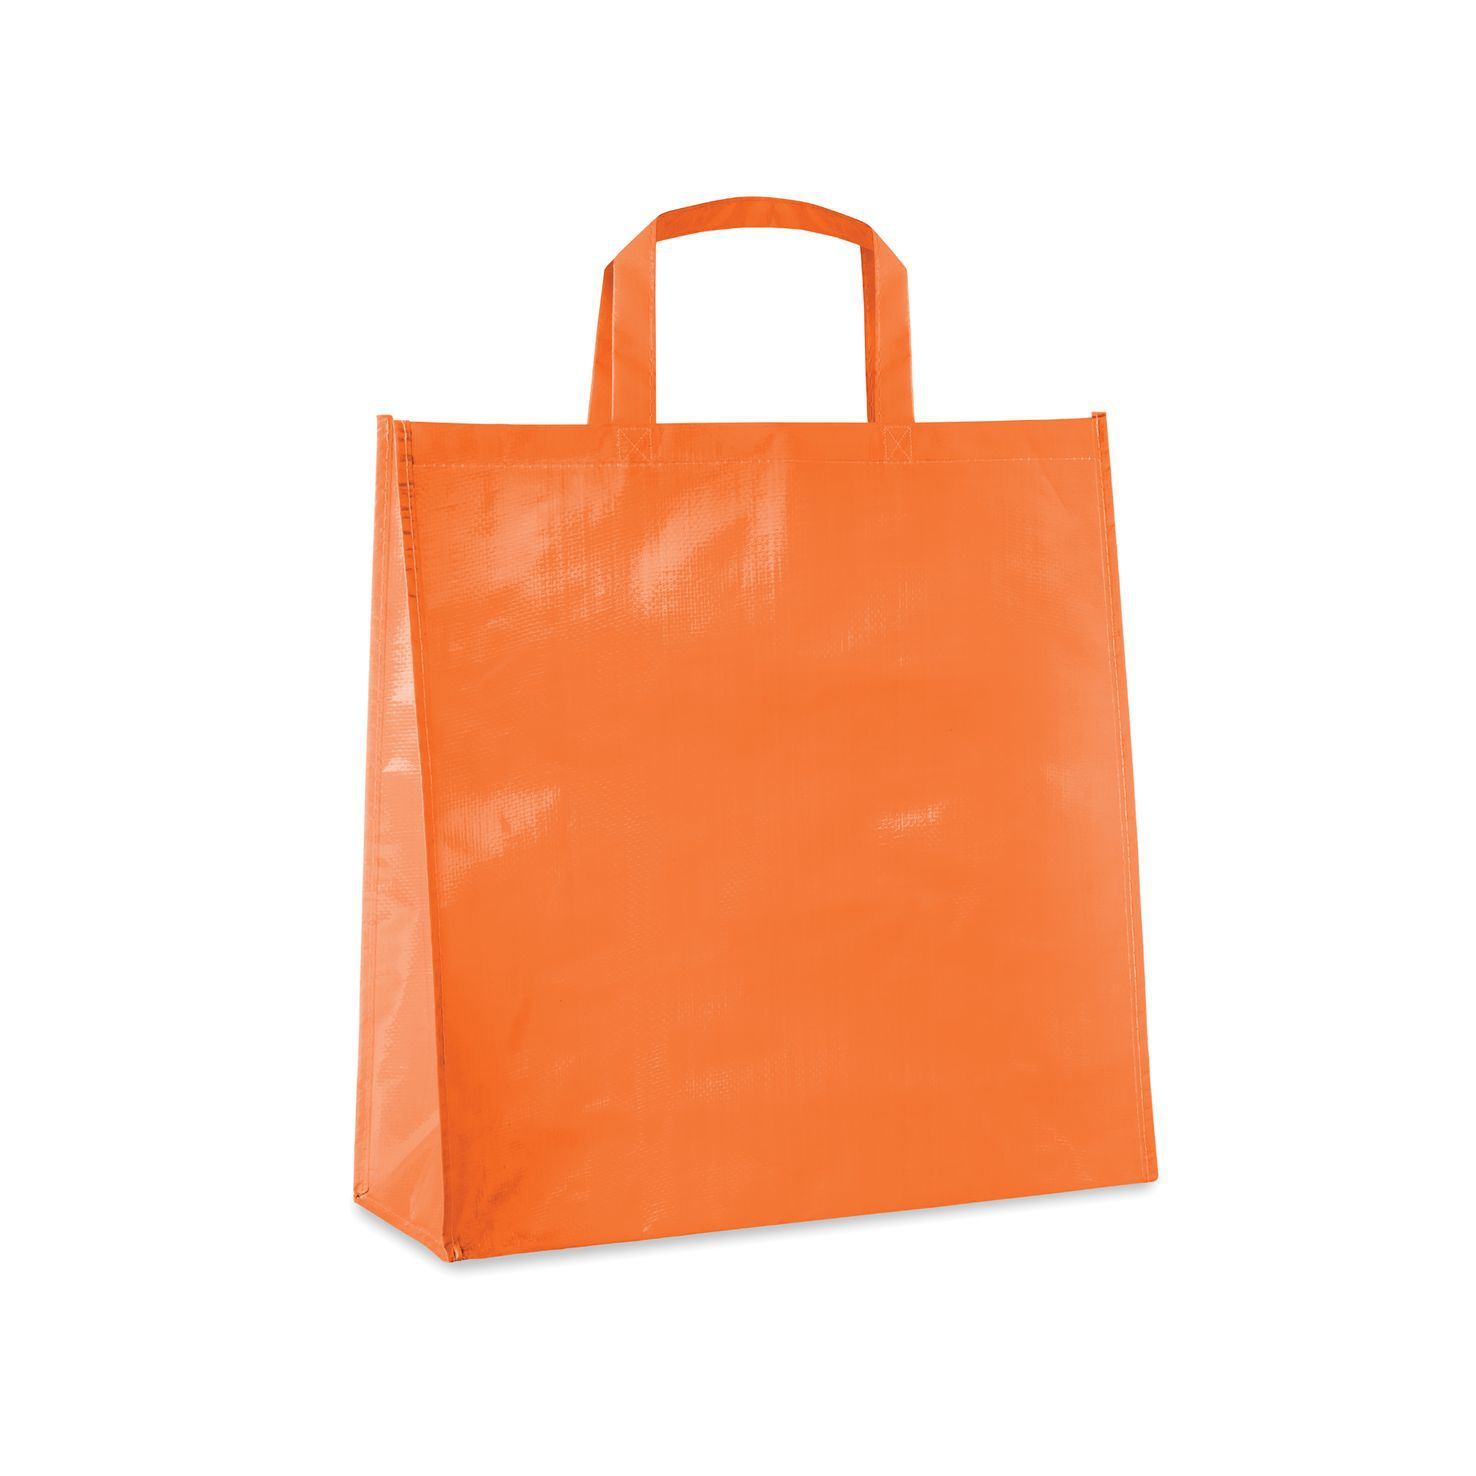 Oranje Shopper | PP geweven | Gelamineerd | 120 grams